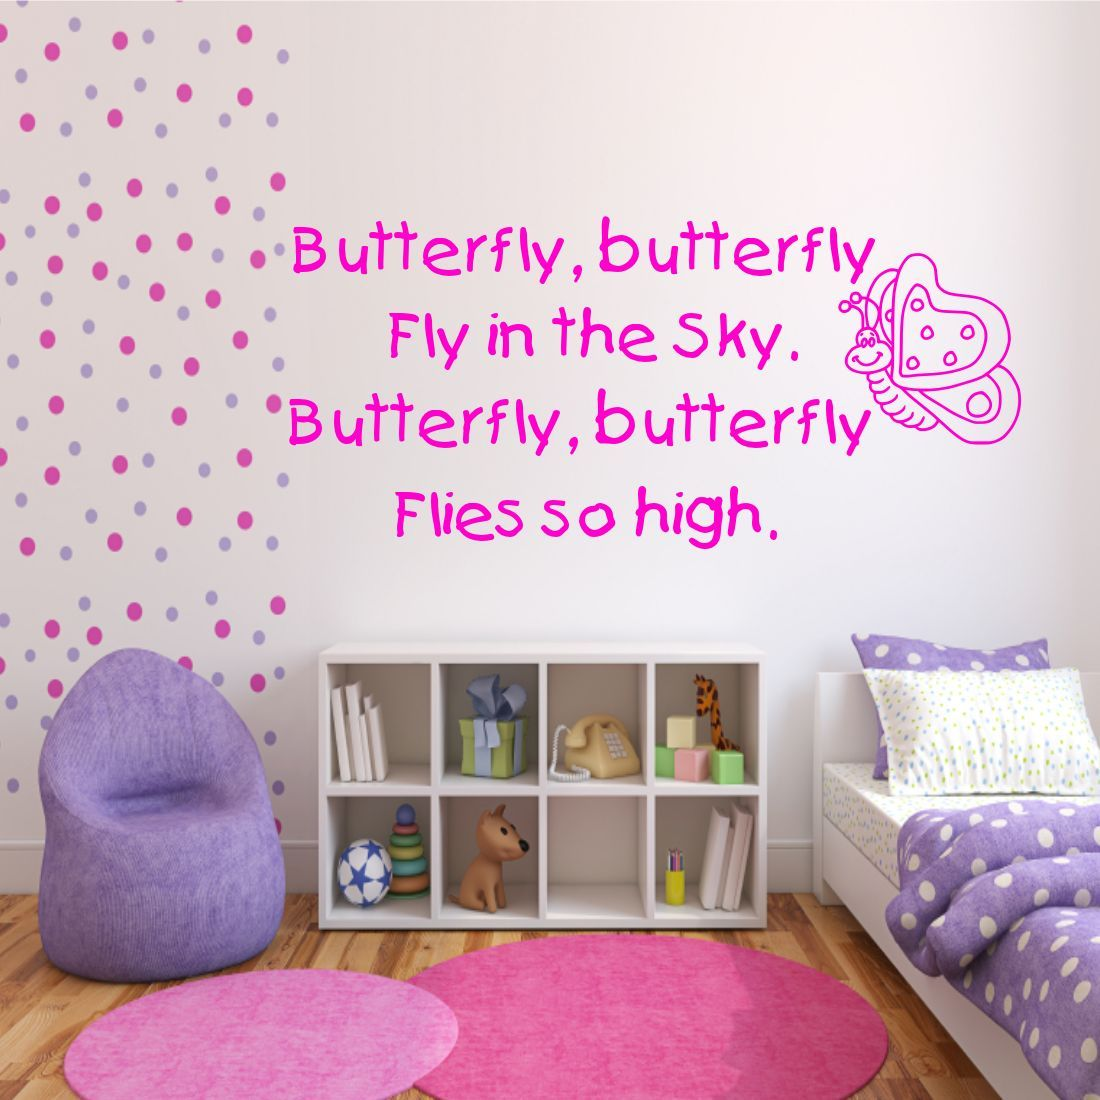 pour enfants papillon po me sticker de citation art mural d calcomanie pochoir ebay. Black Bedroom Furniture Sets. Home Design Ideas